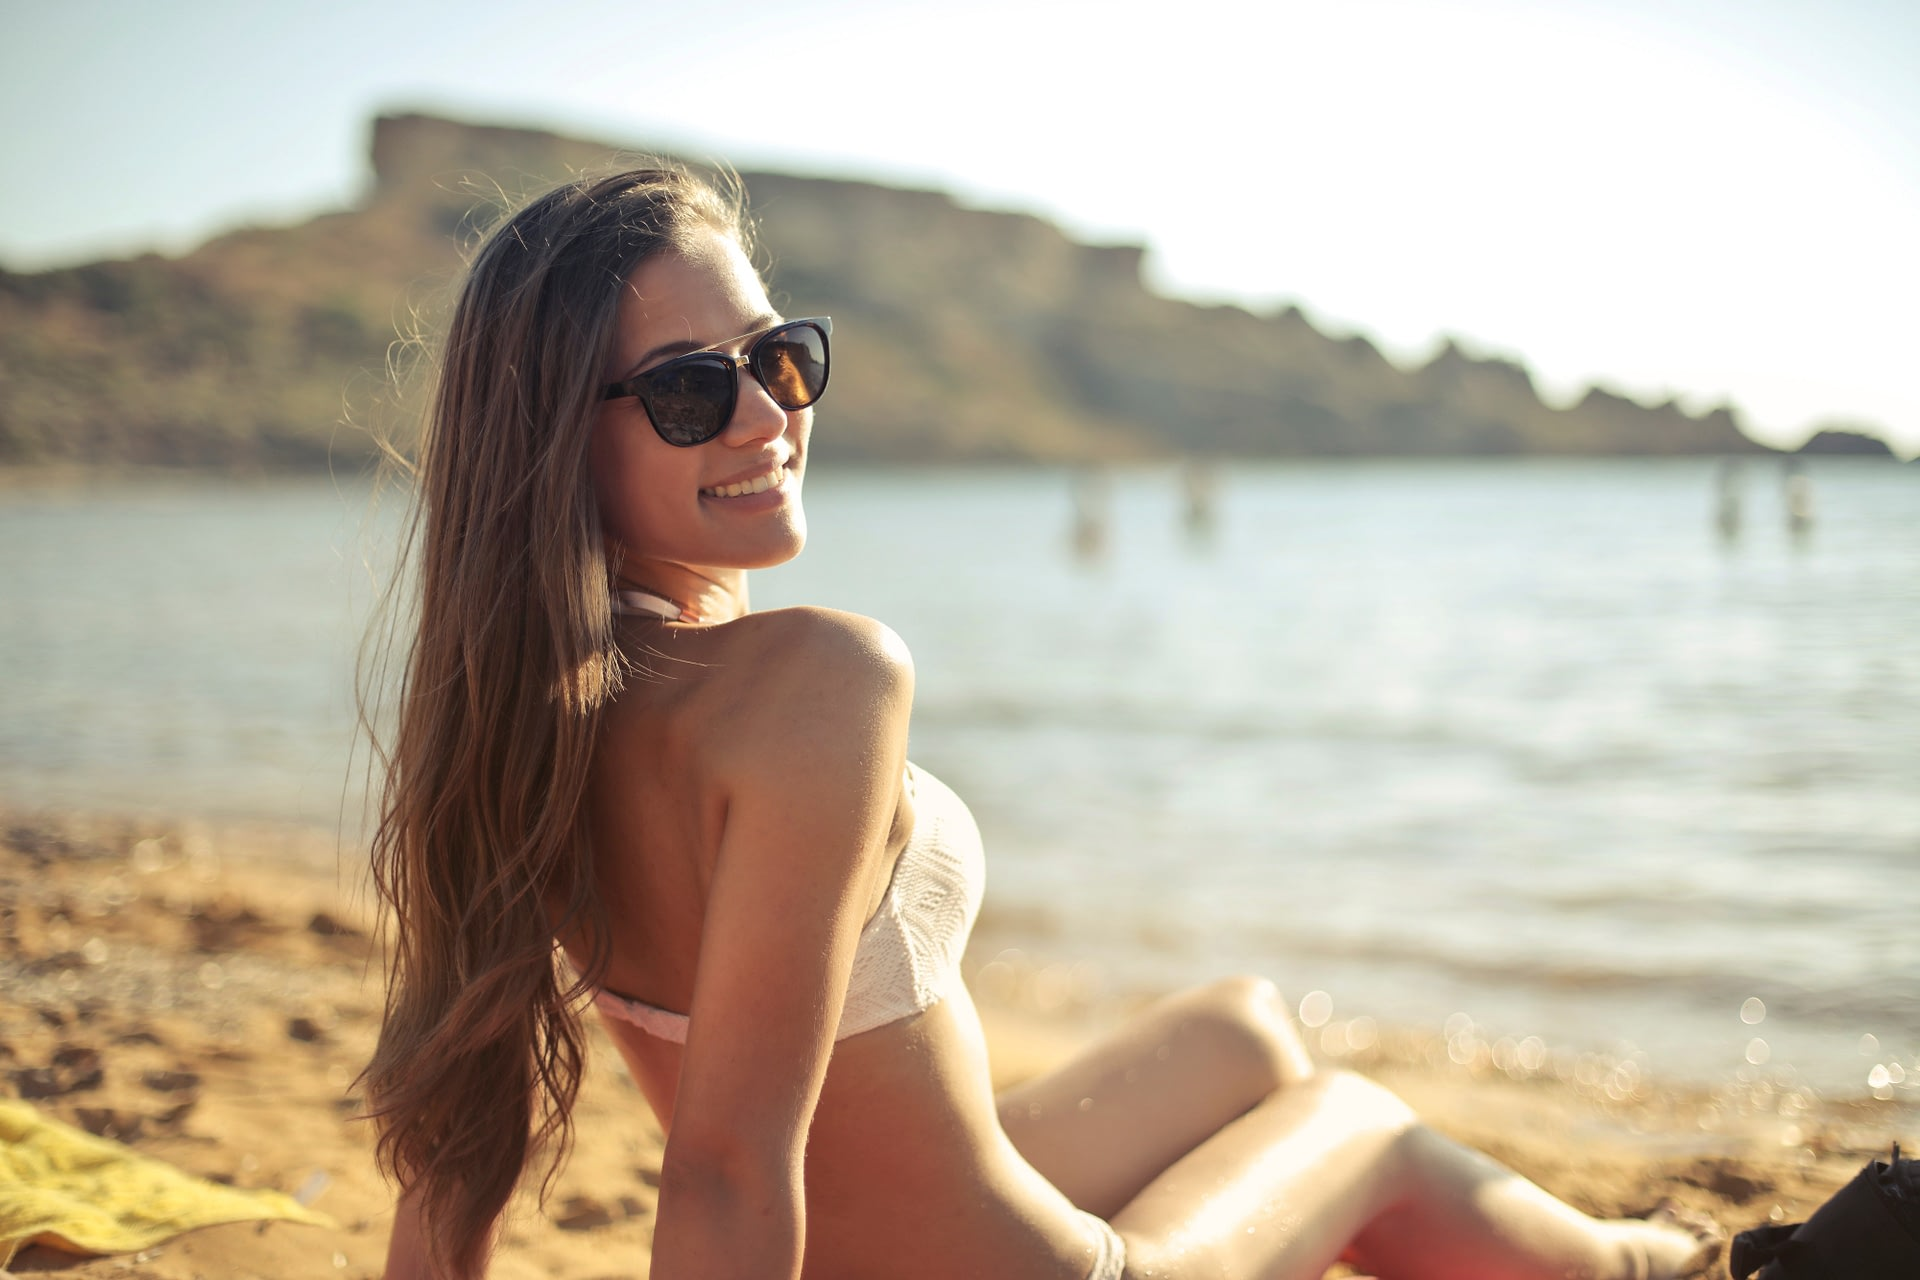 Stylish young girl smiles while tanning on the beach